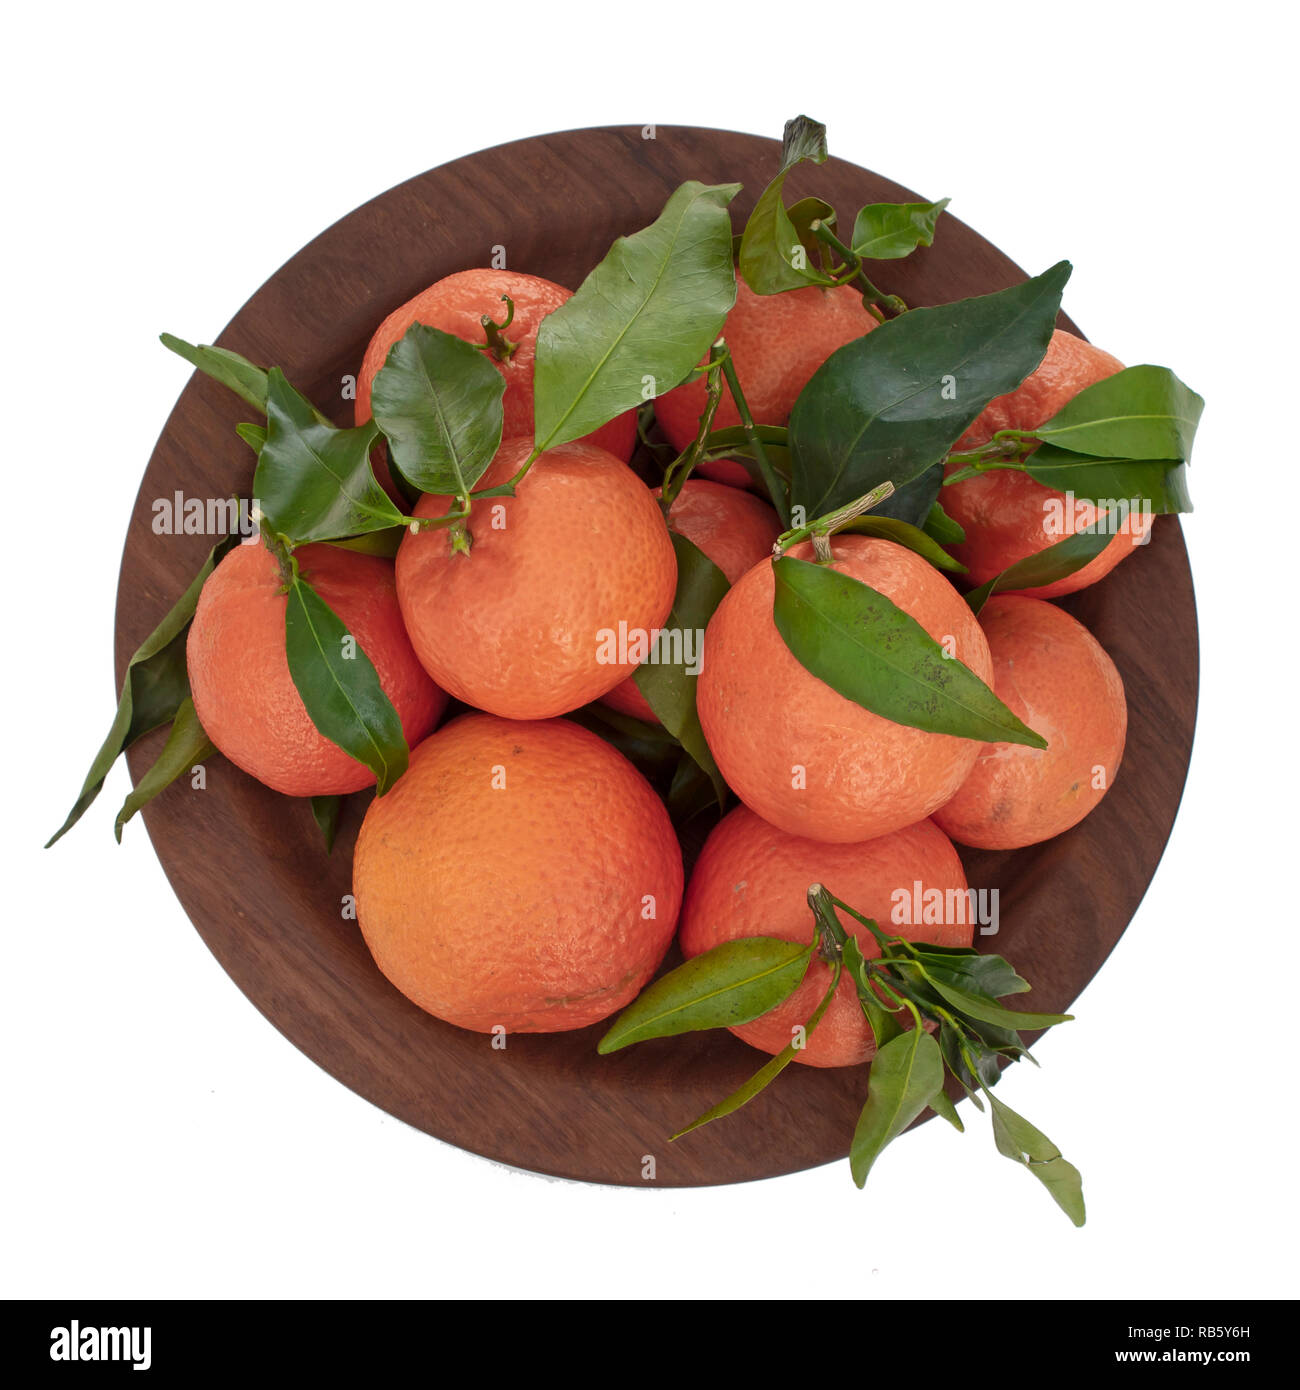 Oranges. Several ruits with leaves on plate, top view, isolated on white. - Stock Image